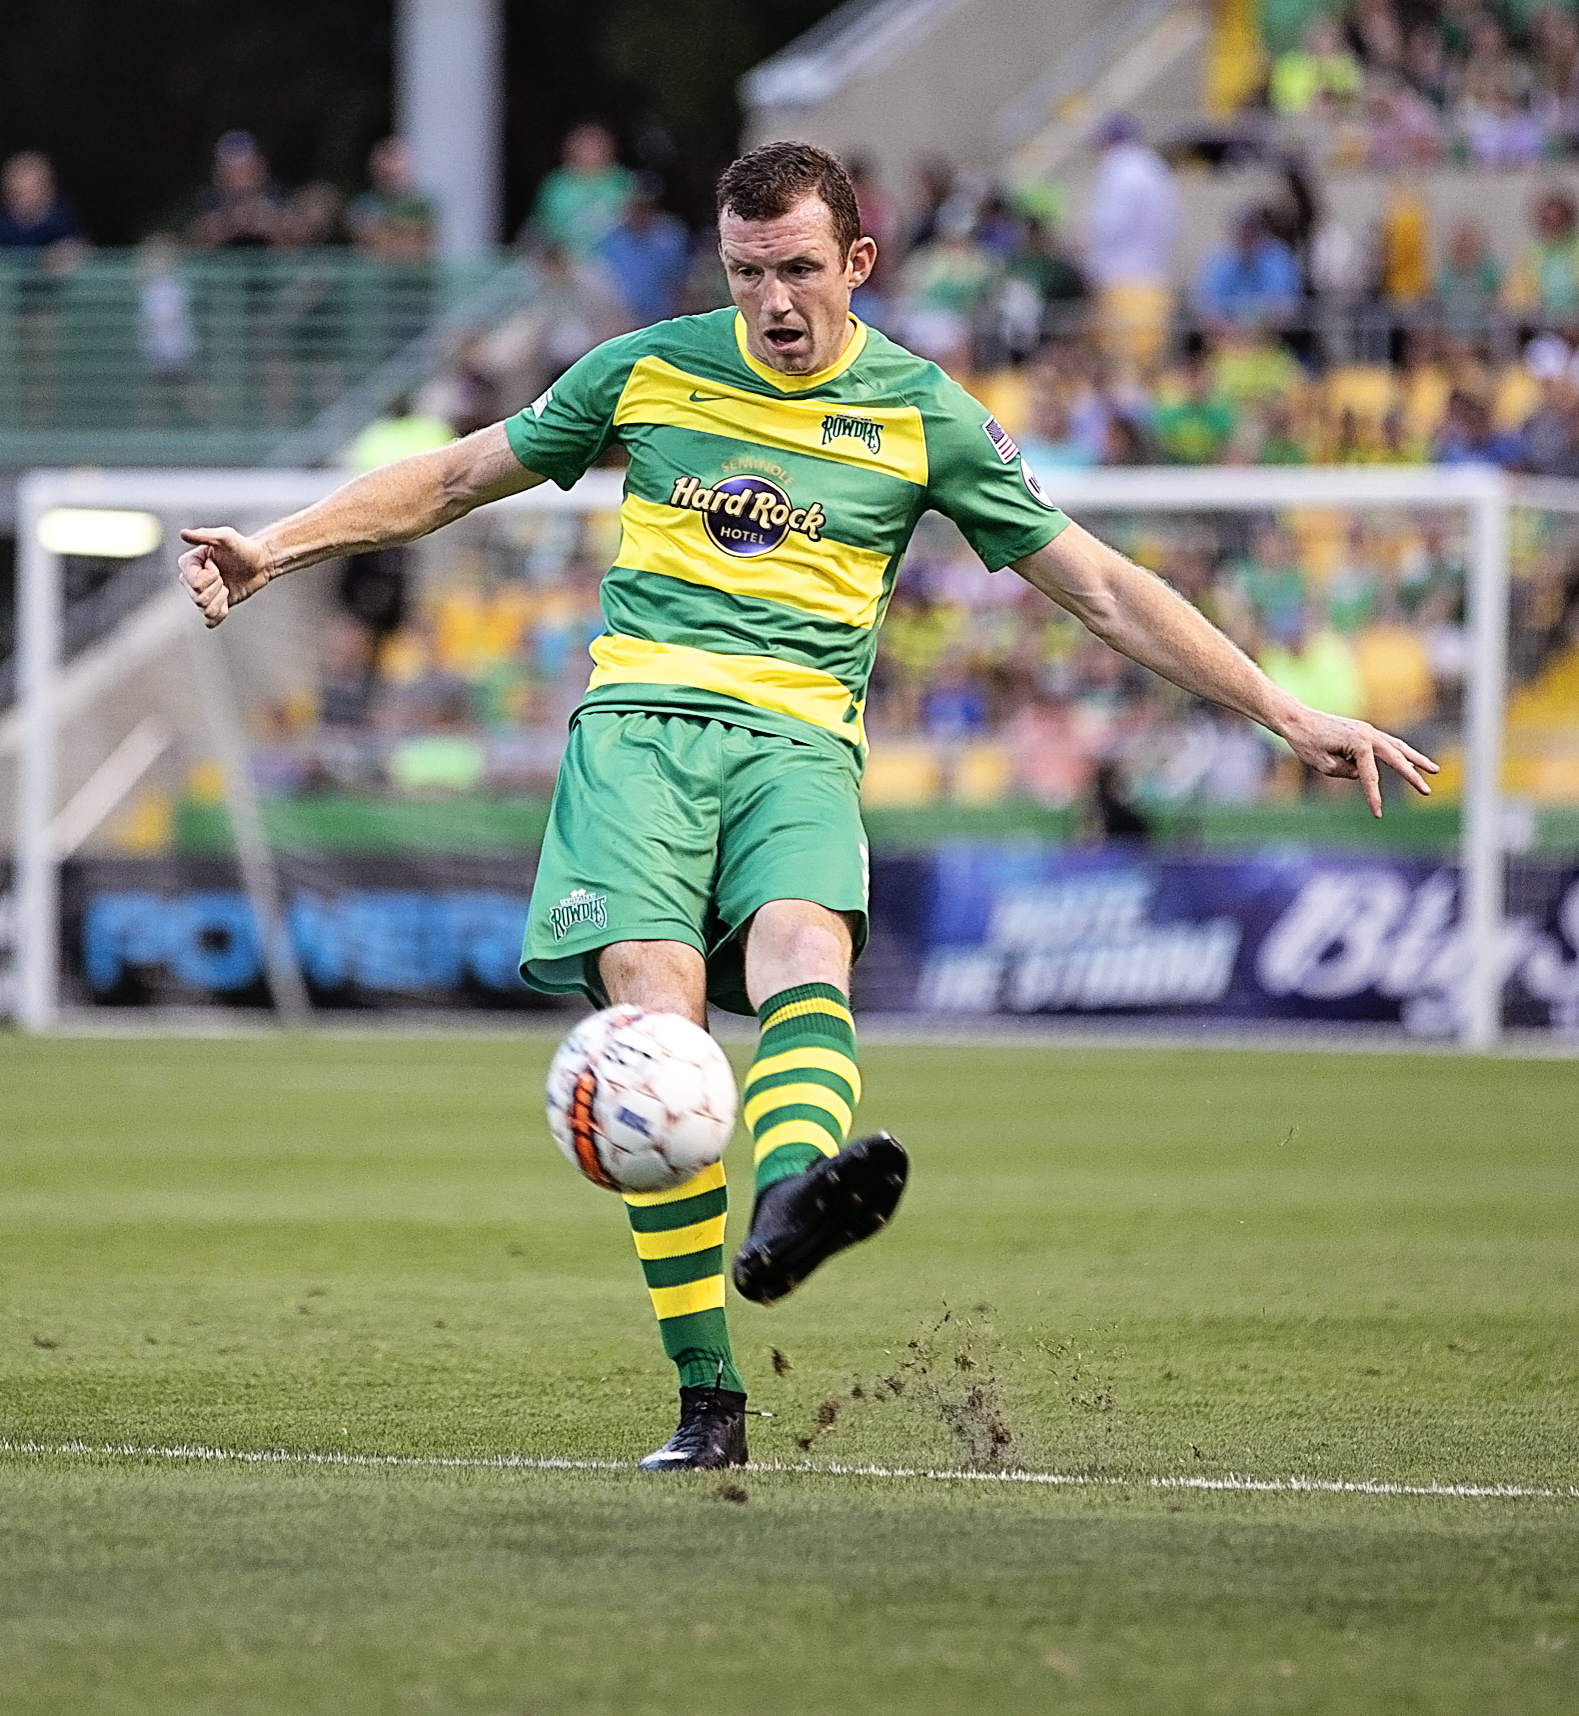 Collins handles the ball for Rowdies./CARMEN MANDATO